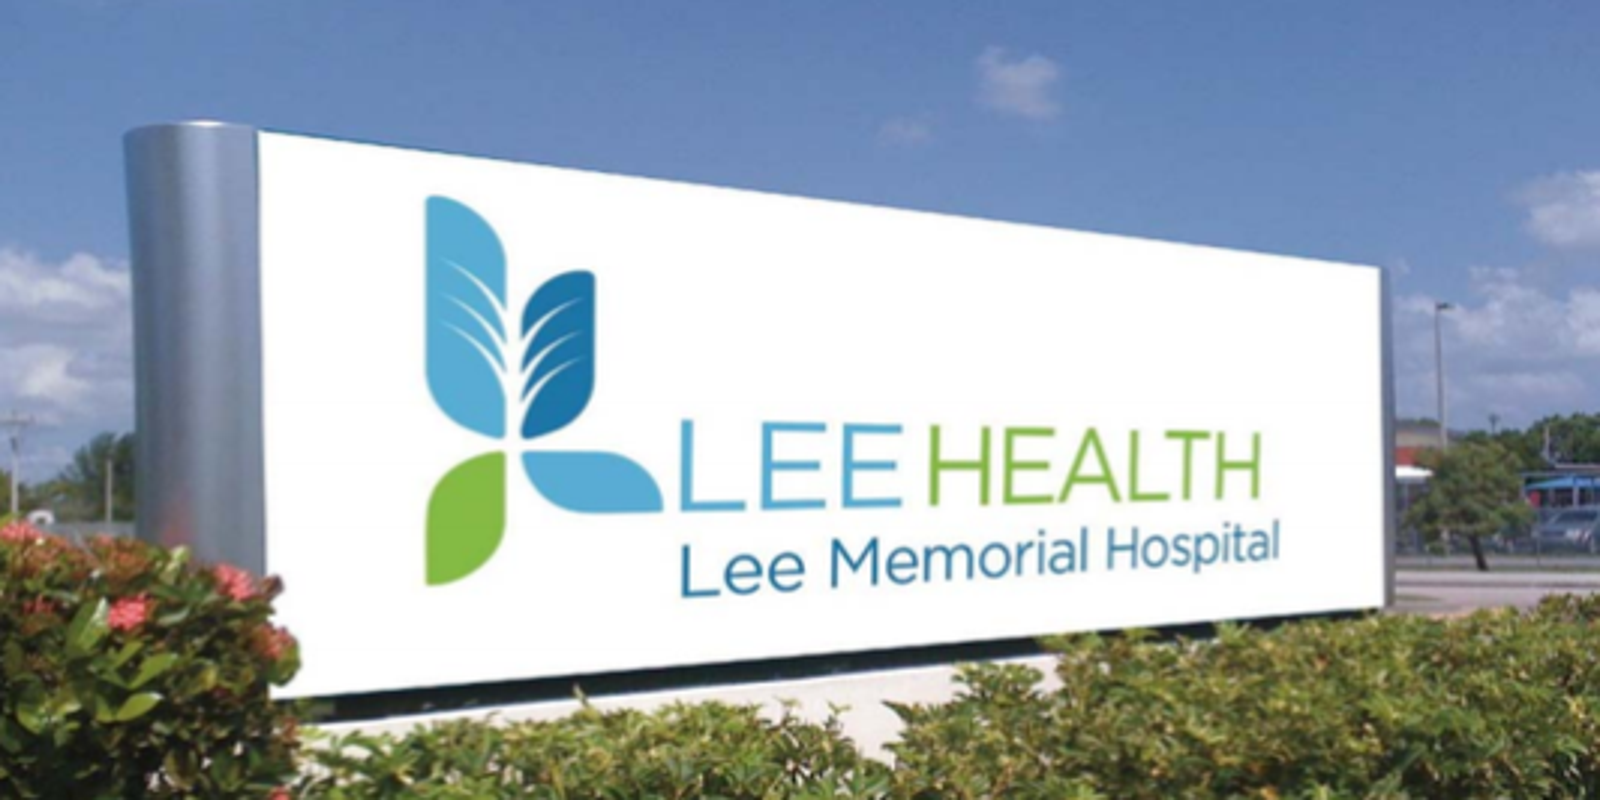 Lee Health, NCH Healthcare System make HealthGrades' list of